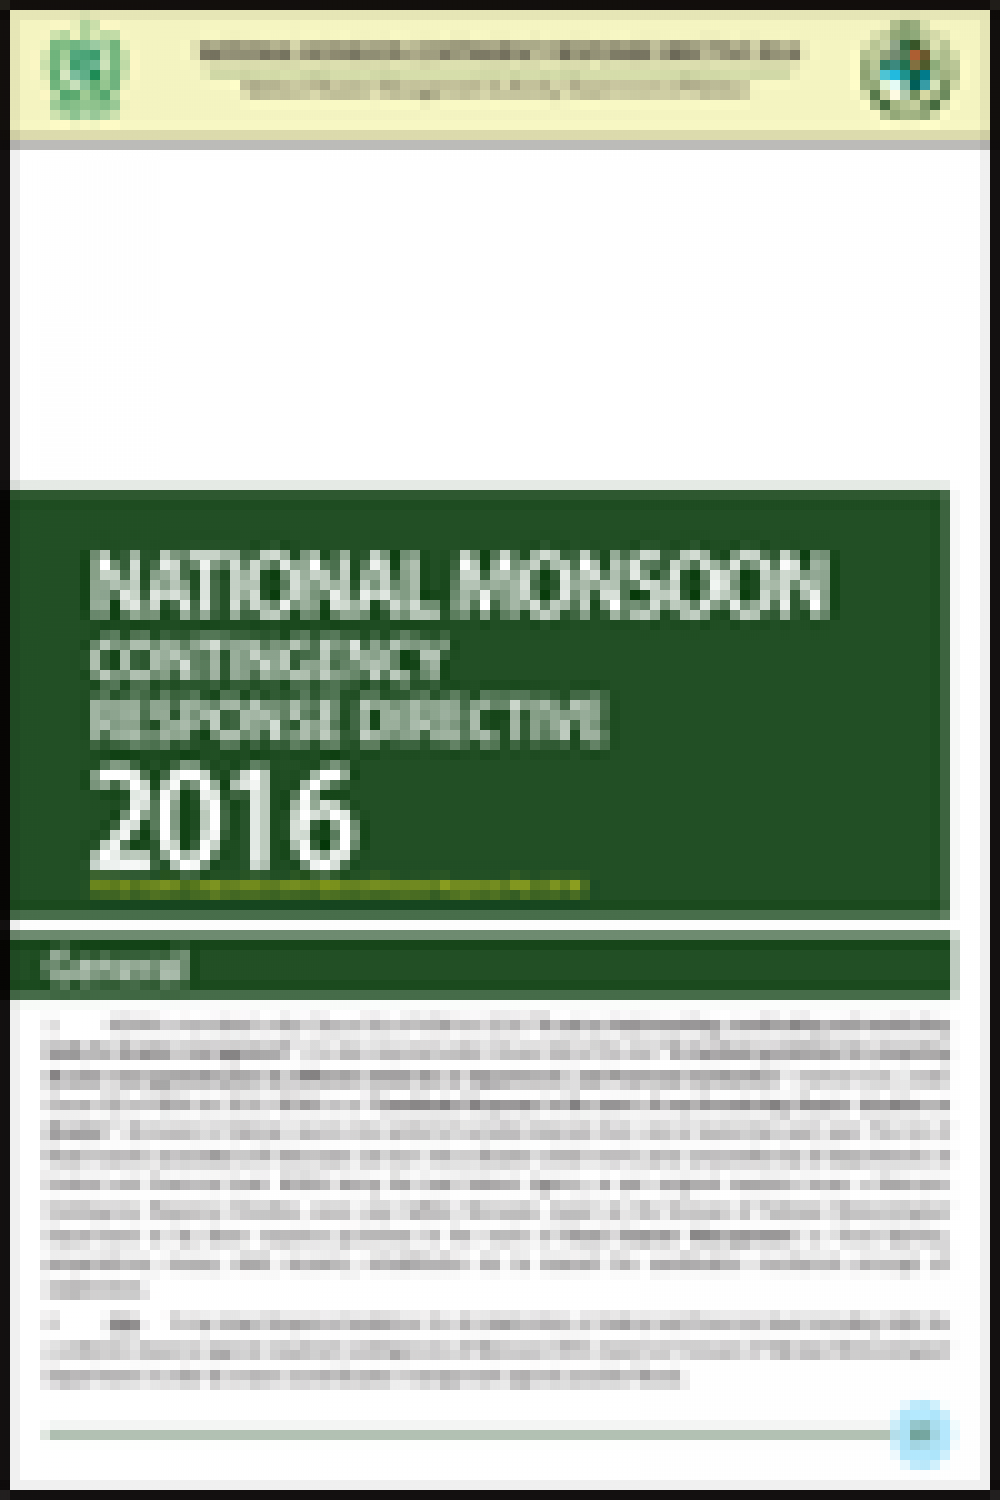 National Monsoon Contingency Response Directive 2016